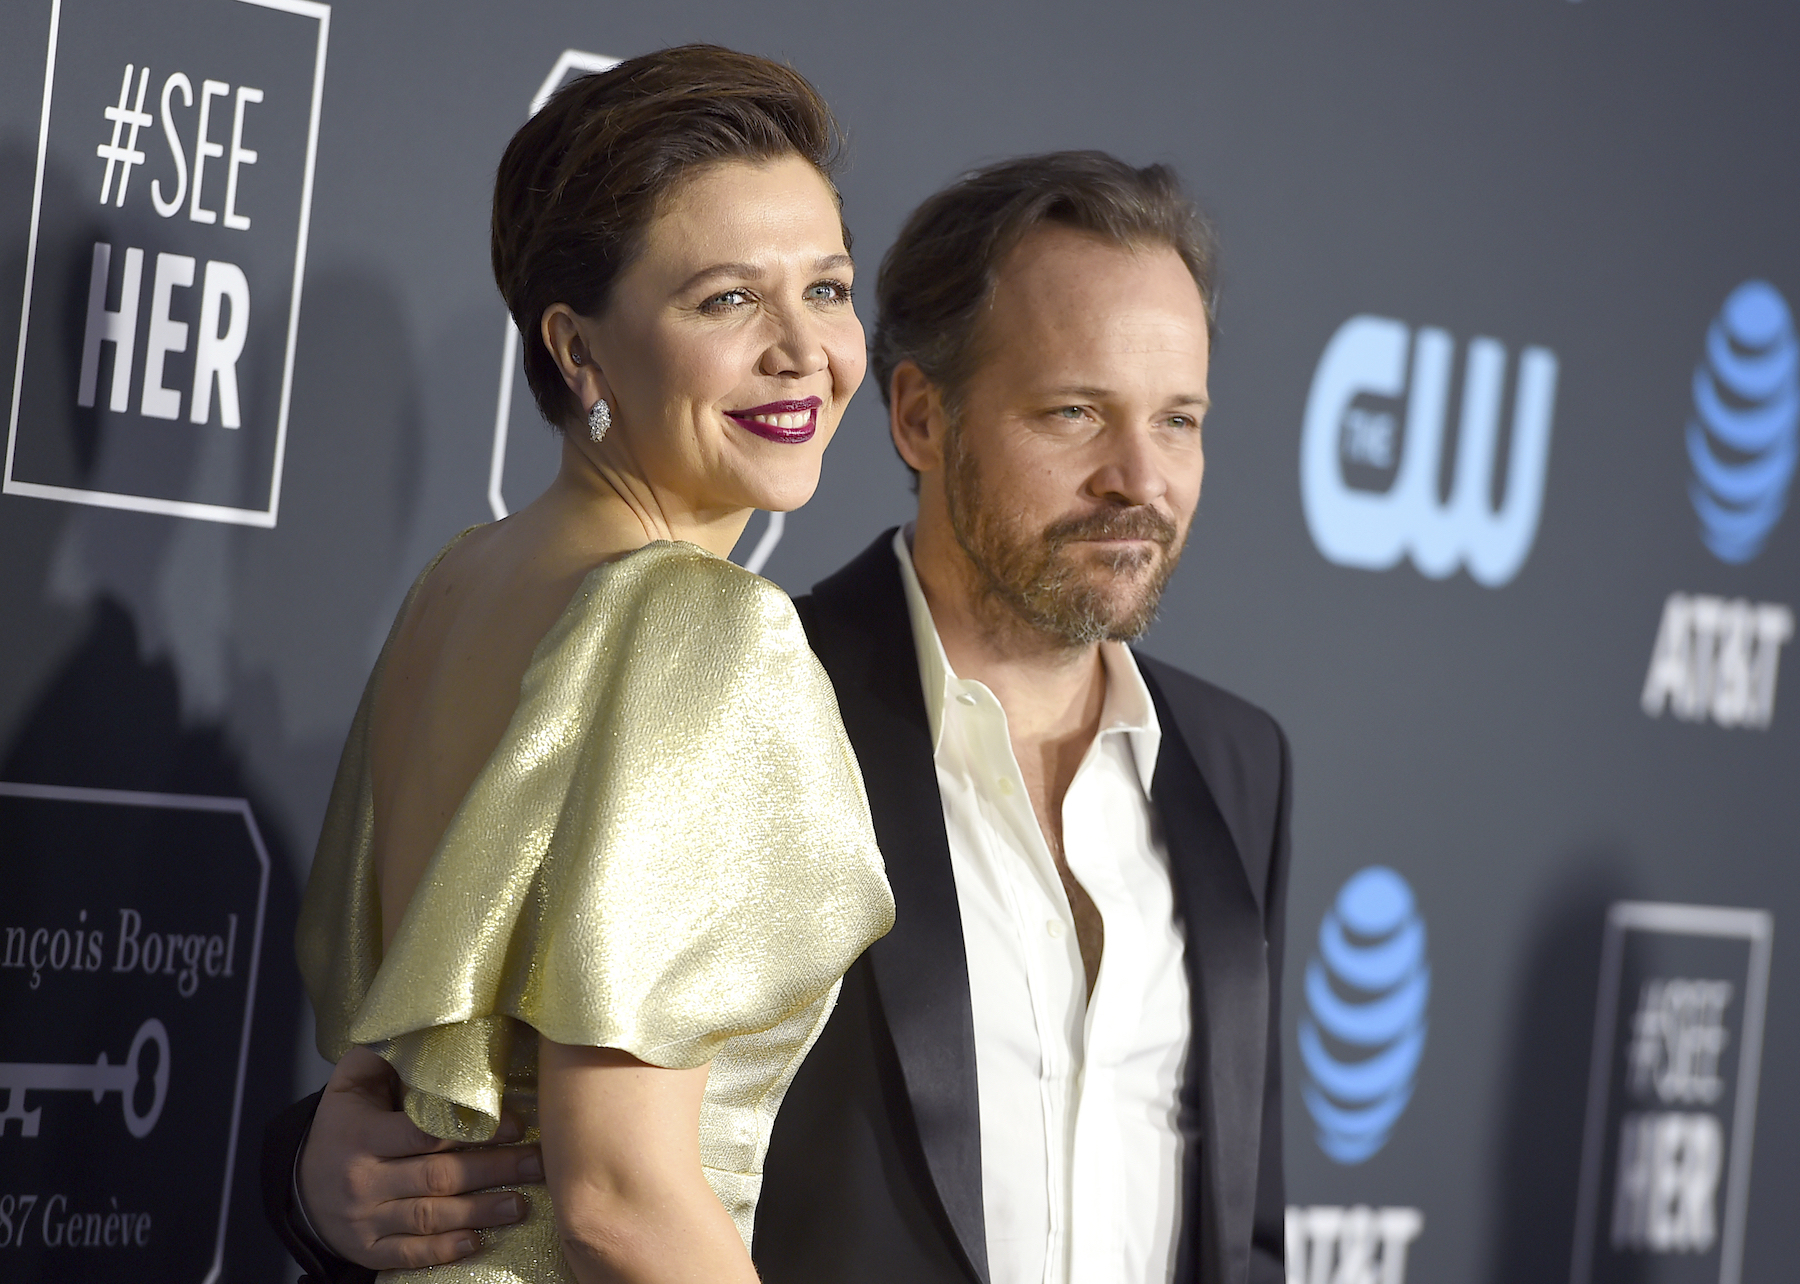 <div class='meta'><div class='origin-logo' data-origin='AP'></div><span class='caption-text' data-credit='Jordan Strauss/Invision/AP'>Peter Sarsgaard, right, and Maggie Gyllenhaal arrive at the 24th annual Critics' Choice Awards on Sunday, Jan. 13, 2019, at the Barker Hangar in Santa Monica, Calif.</span></div>